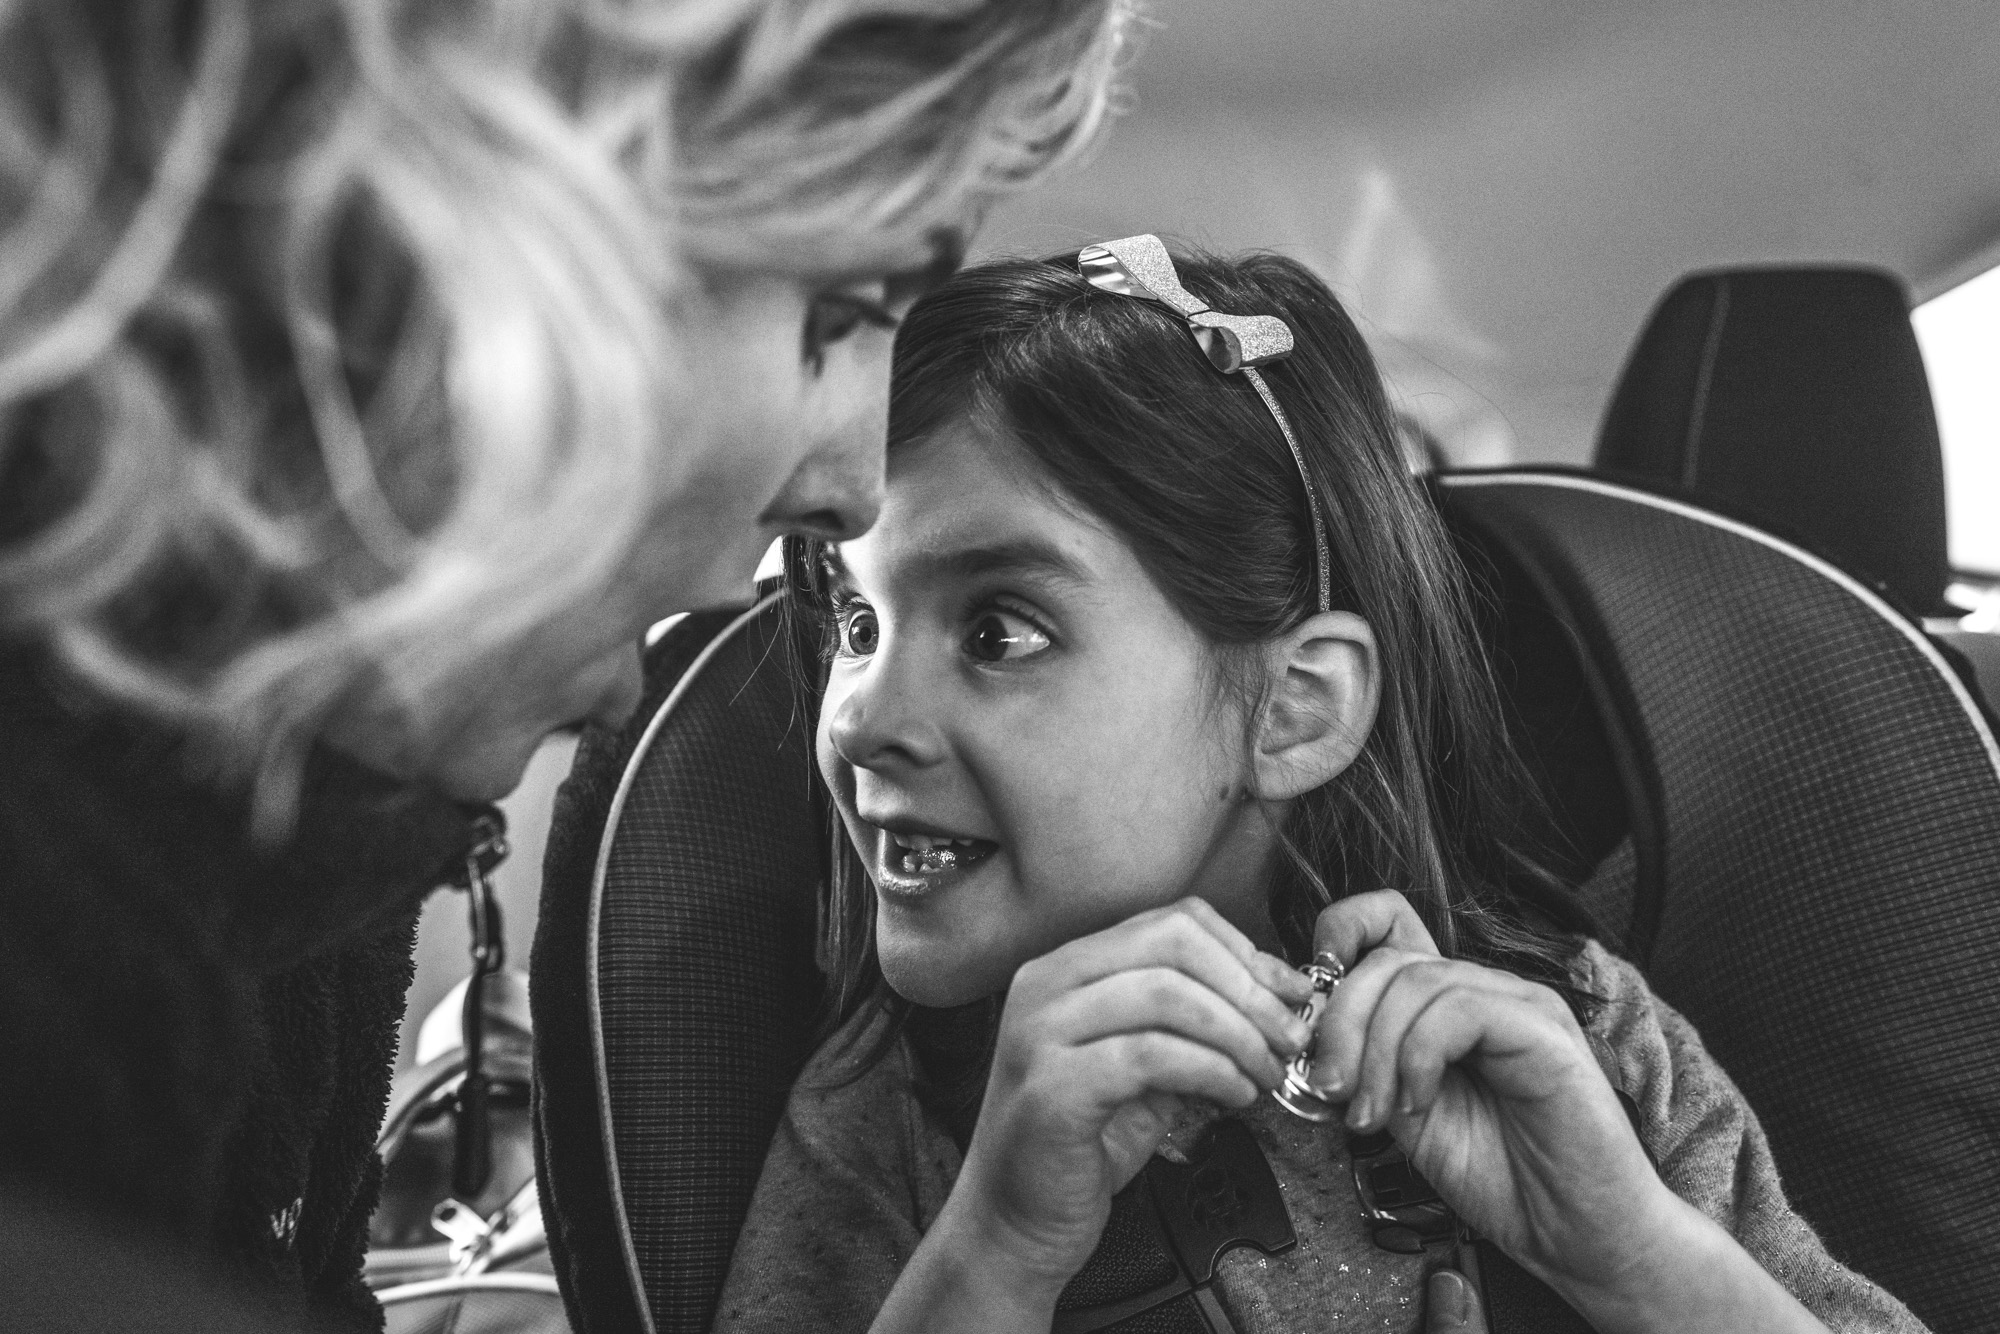 Black and white close-up photo of a little girl in a car seat telling her mother a secret while her mother reacts with a shocked face. Photo taken during the family's documentary photography session in Denver, Colorado.